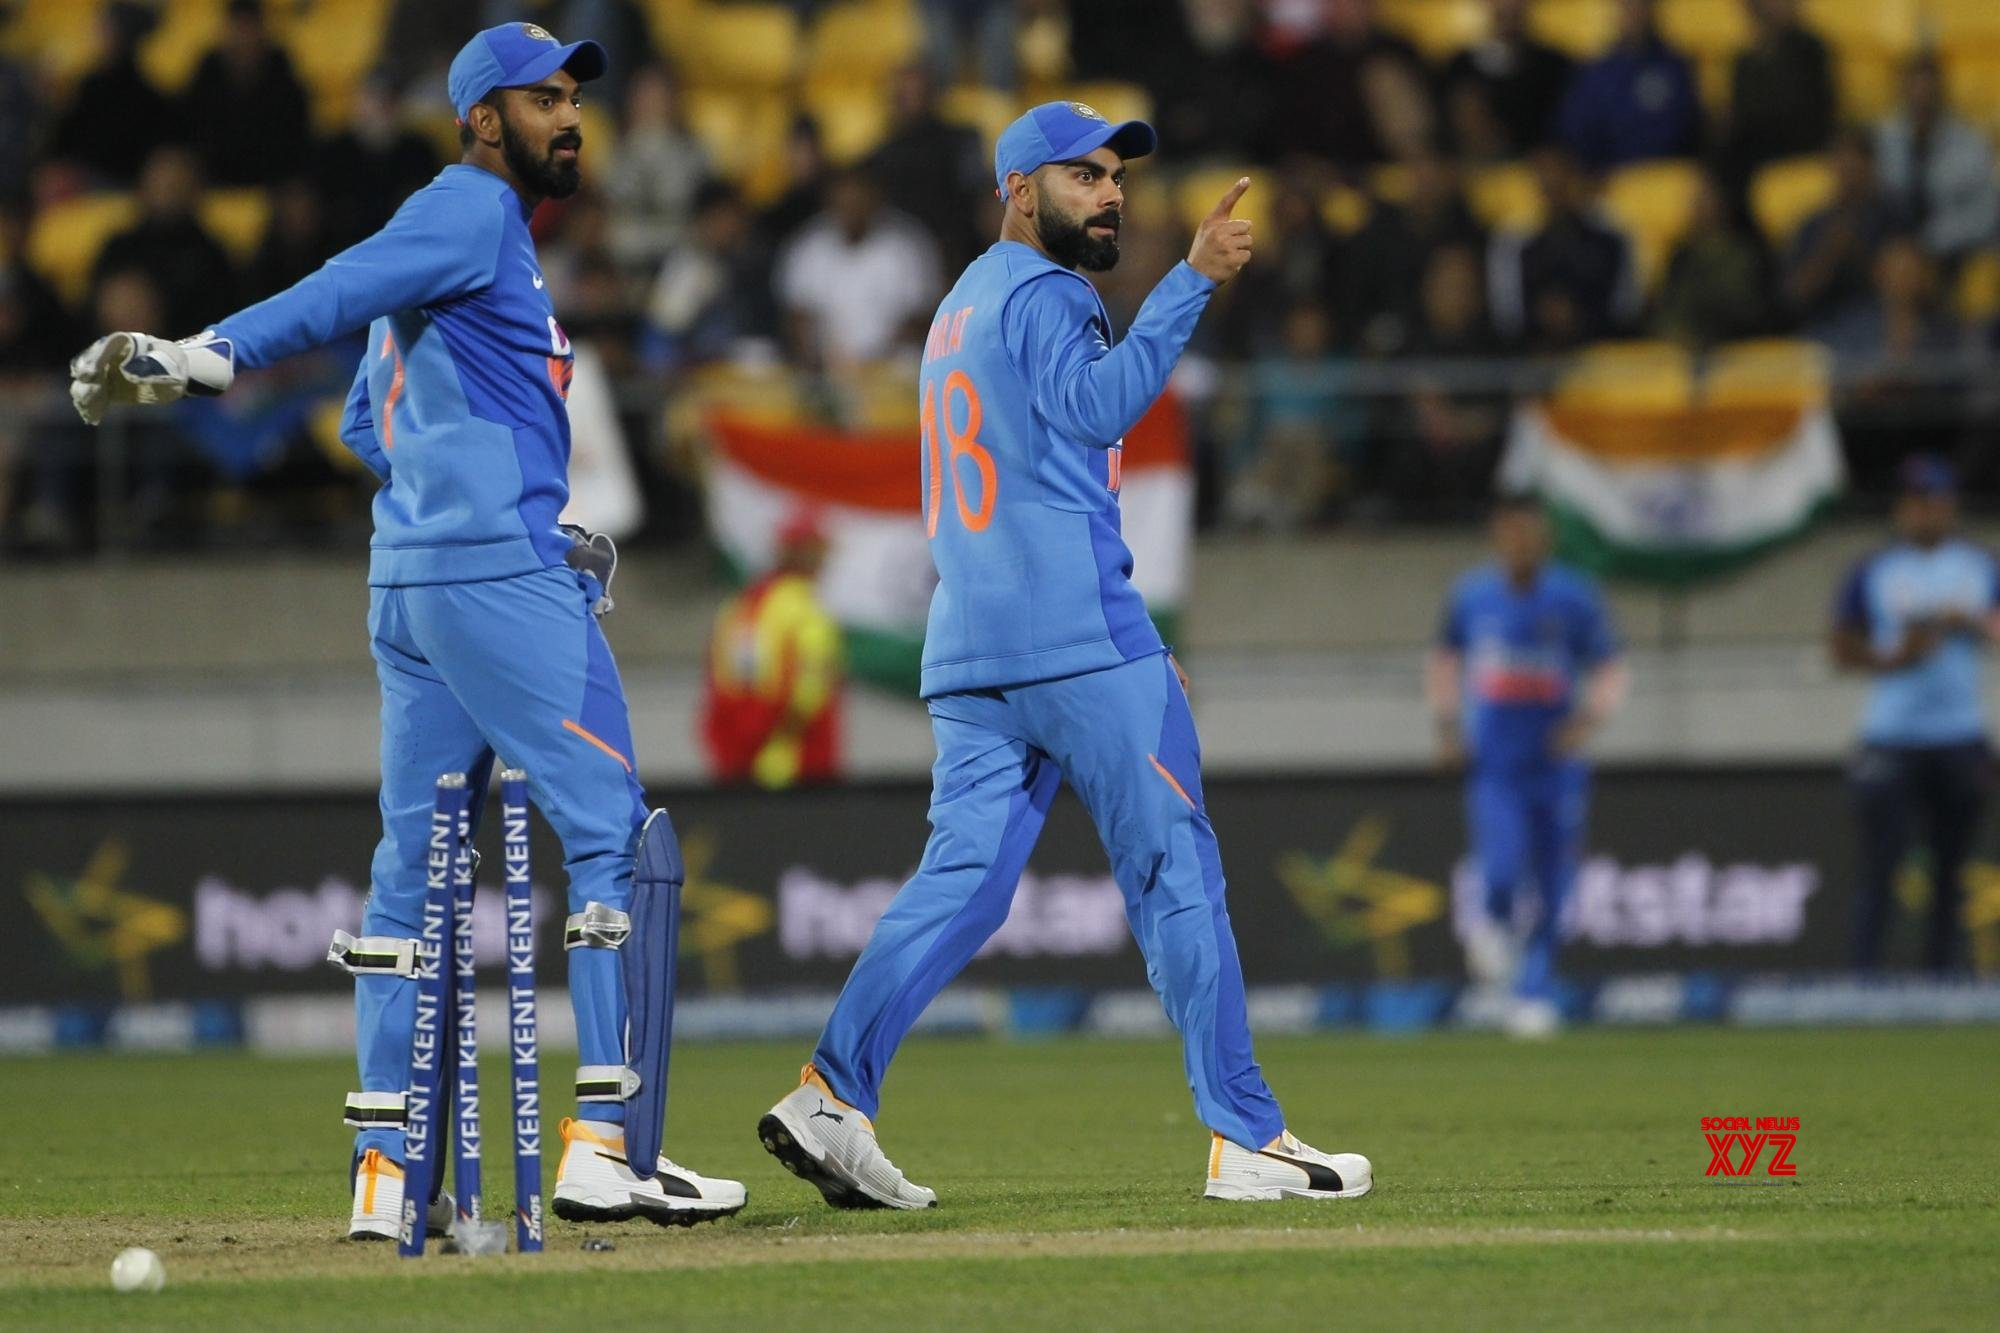 Kohli, Rahul engage in hilarious banter over coffee cup